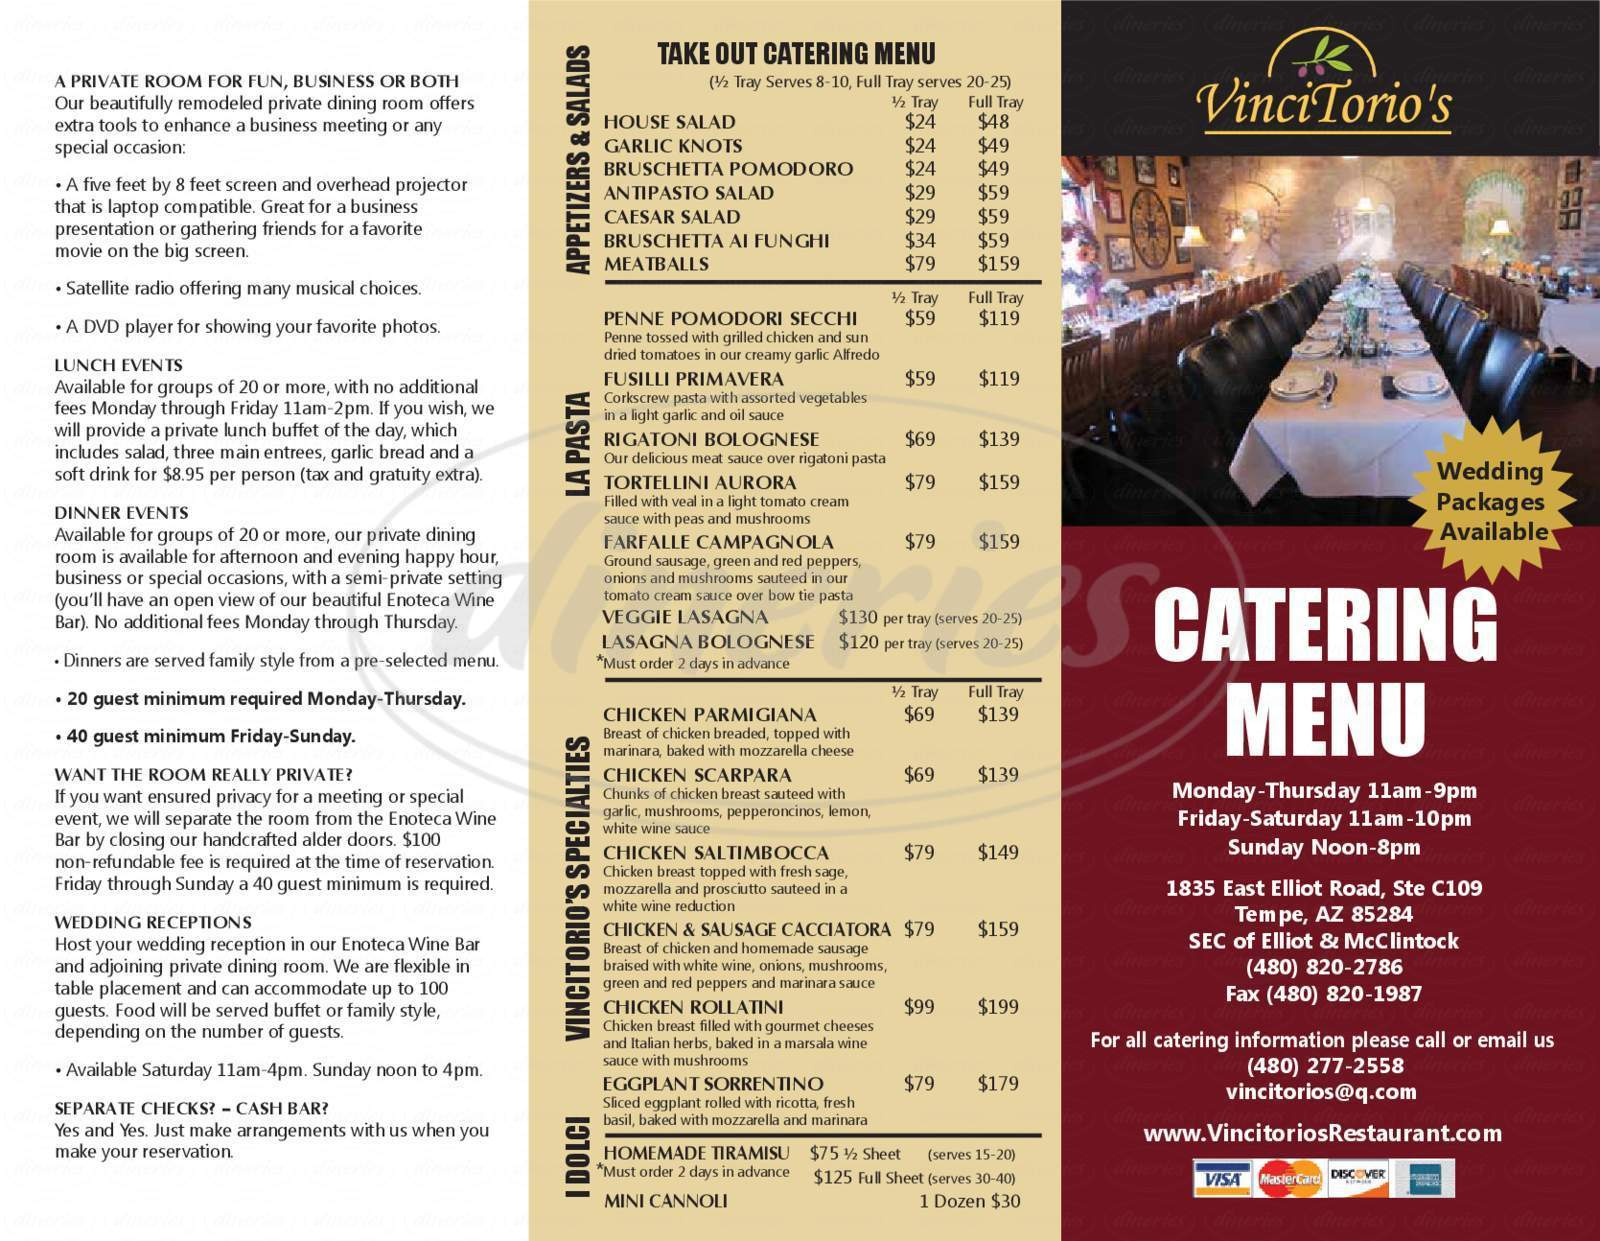 menu for VinciTorio's Restaurant